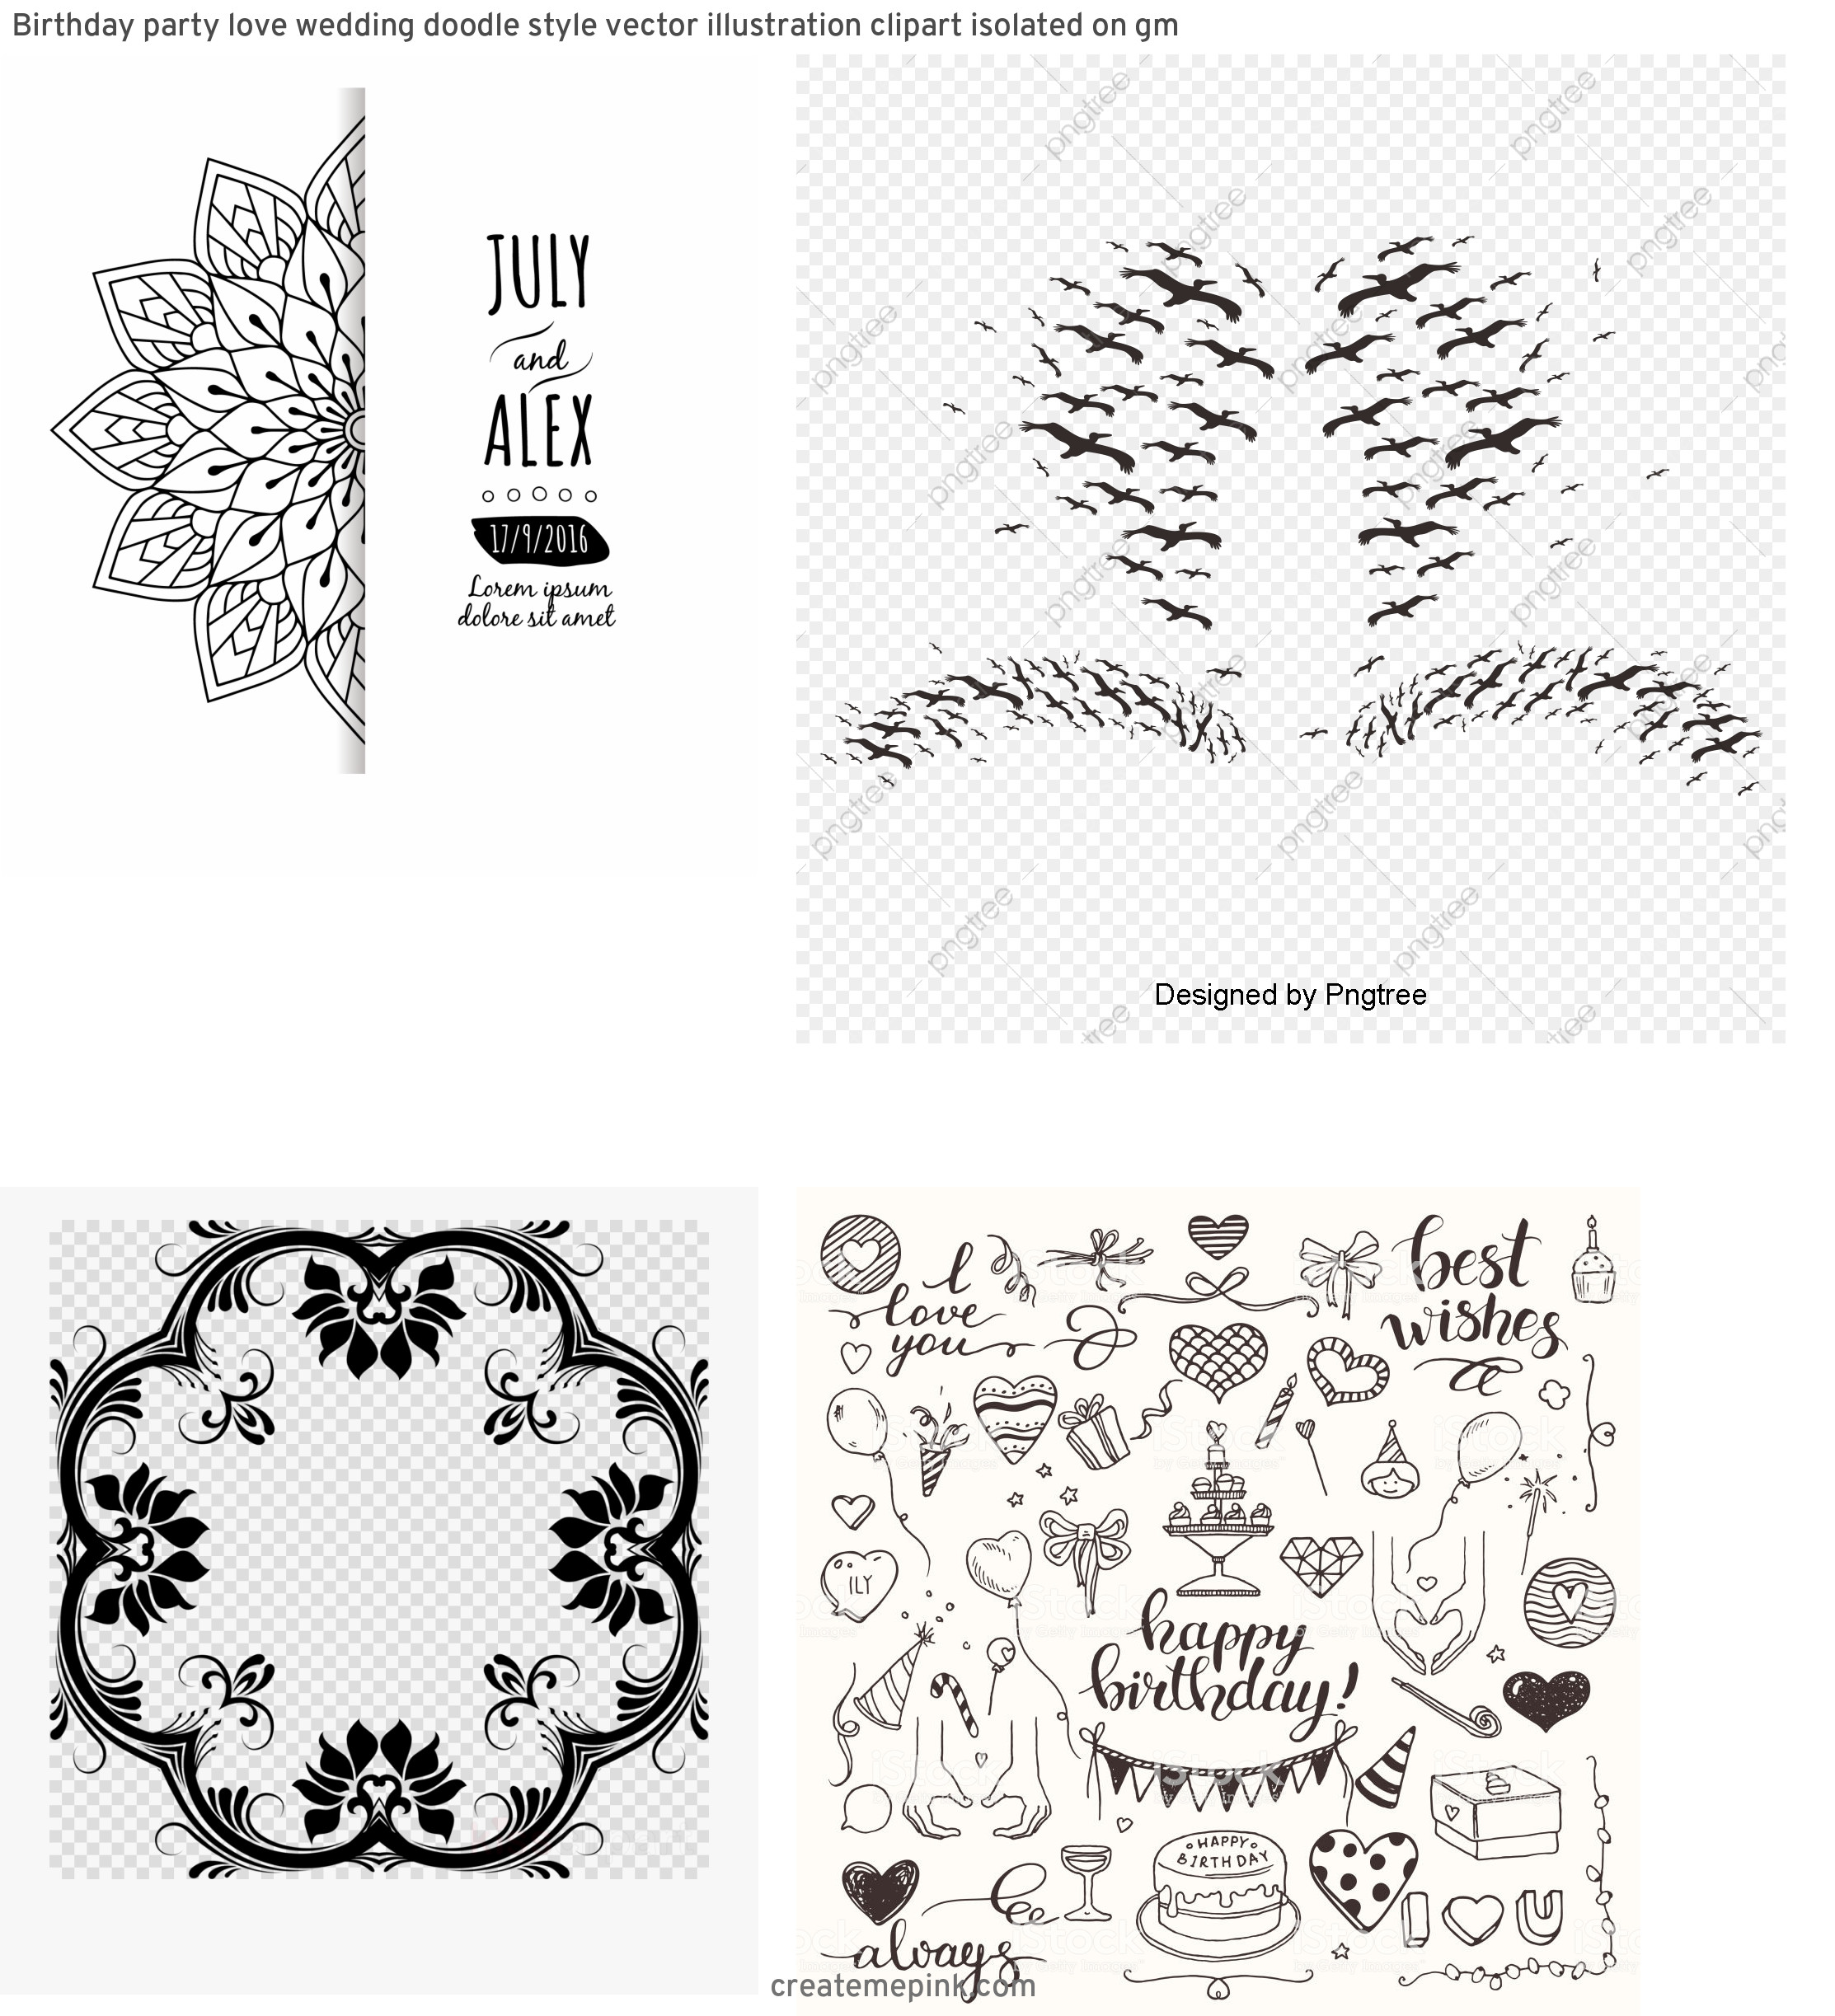 White Clip Art Vector Design: Birthday Party Love Wedding Doodle Style Vector Illustration Clipart Isolated On Gm